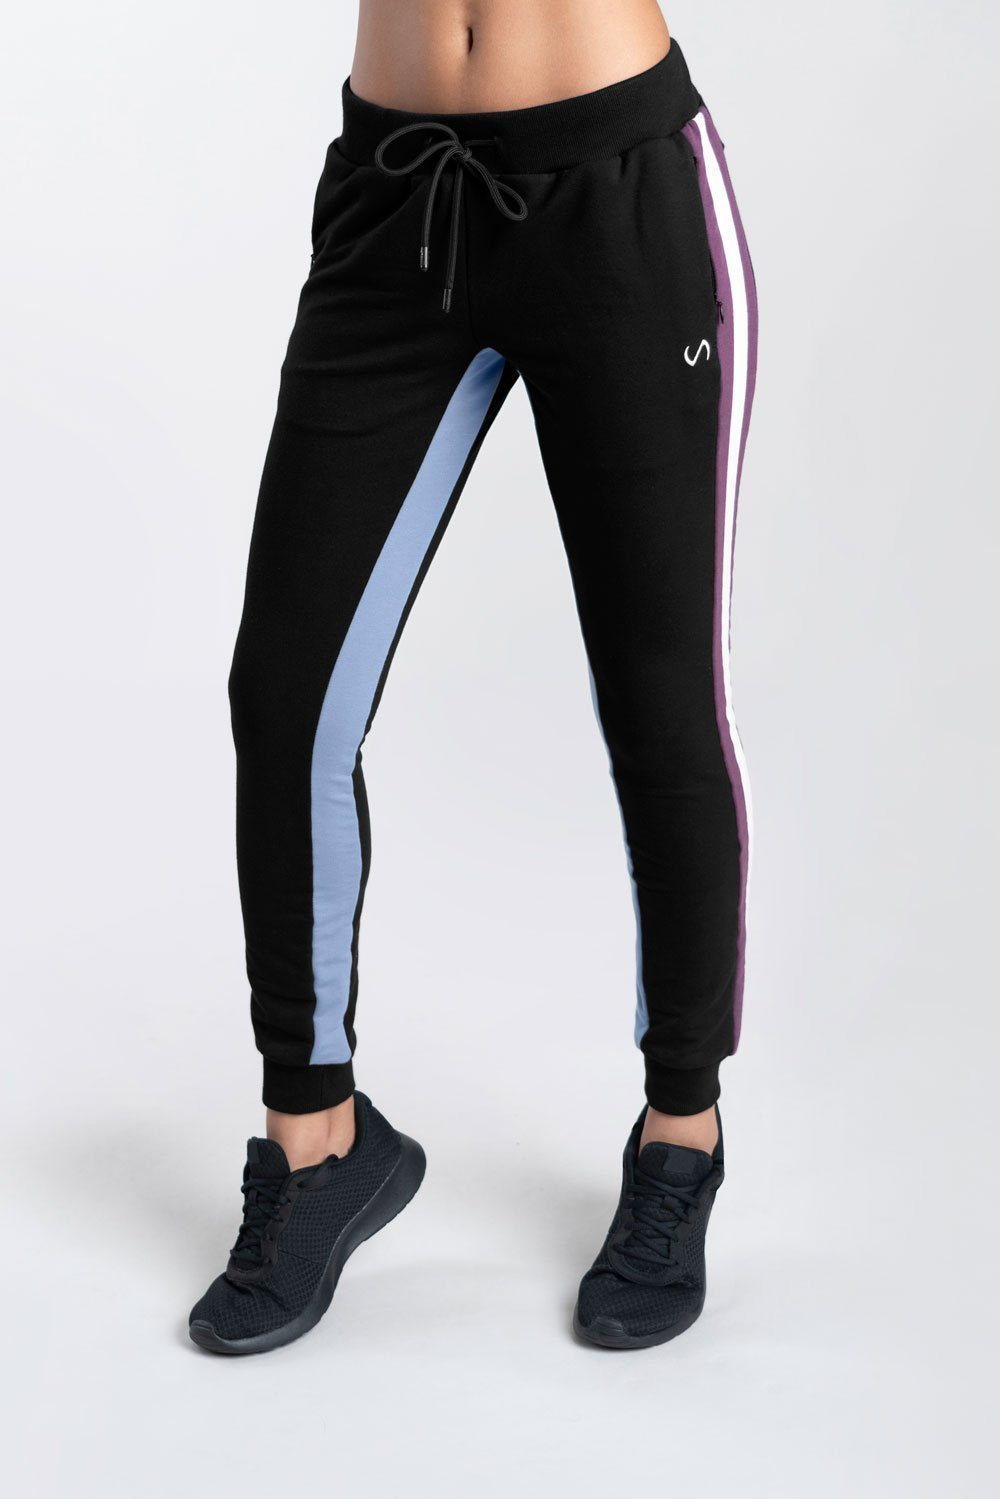 TLF Aceso Jogger - Joggers & Pants - TLF Apparel   Take Life Further